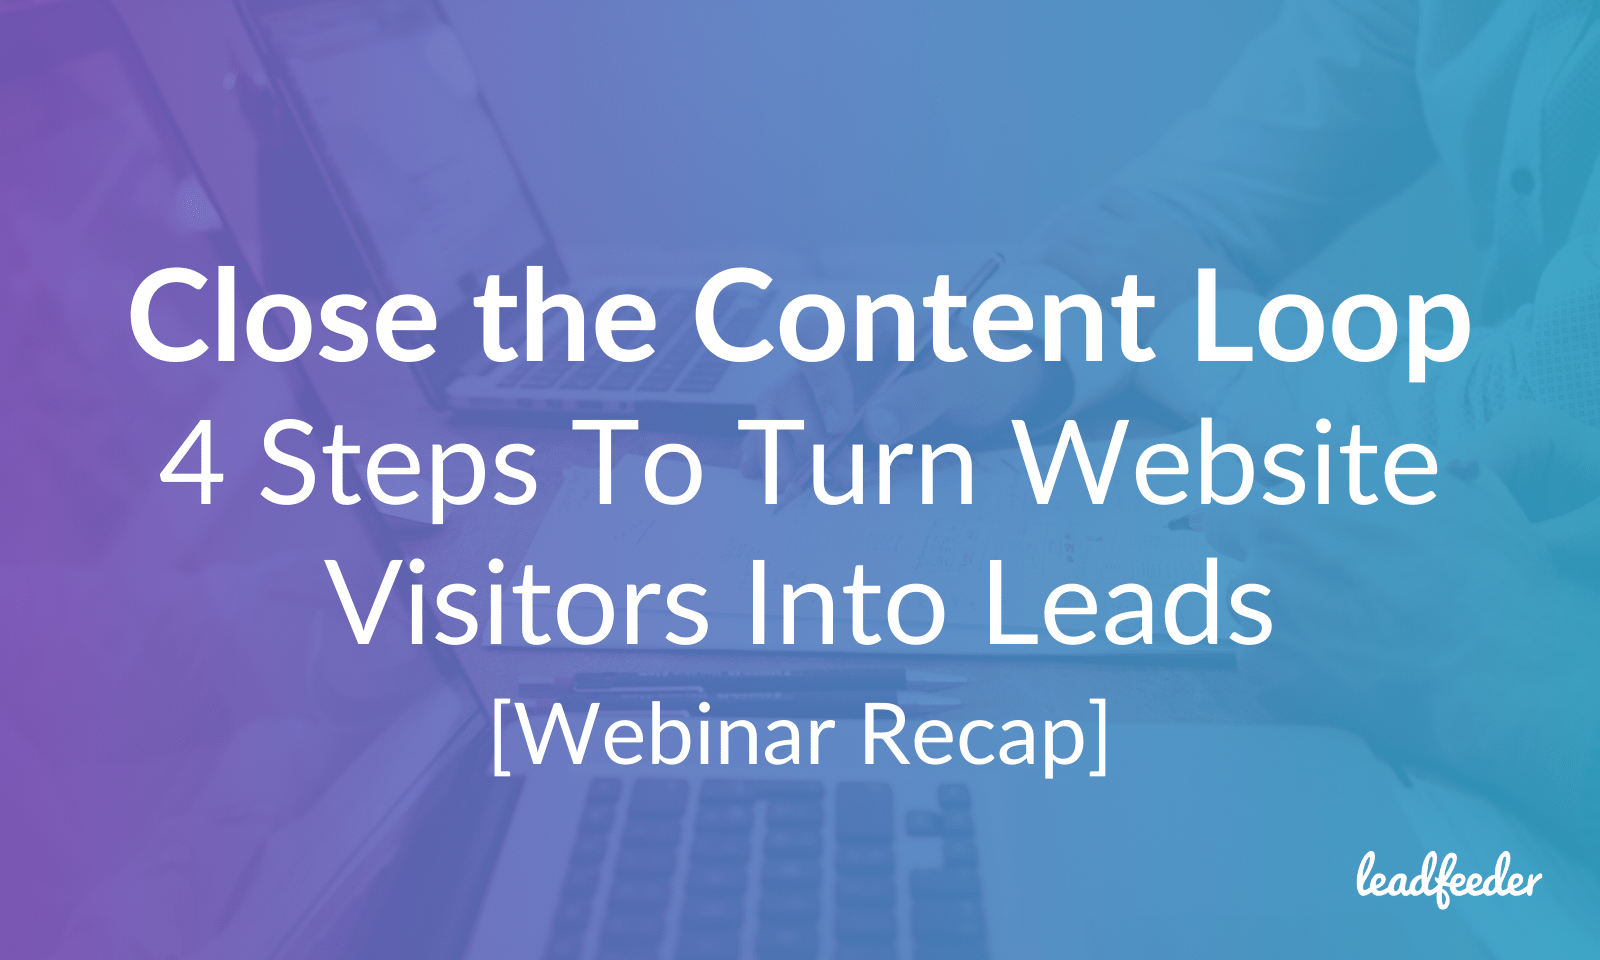 website visitors leads header